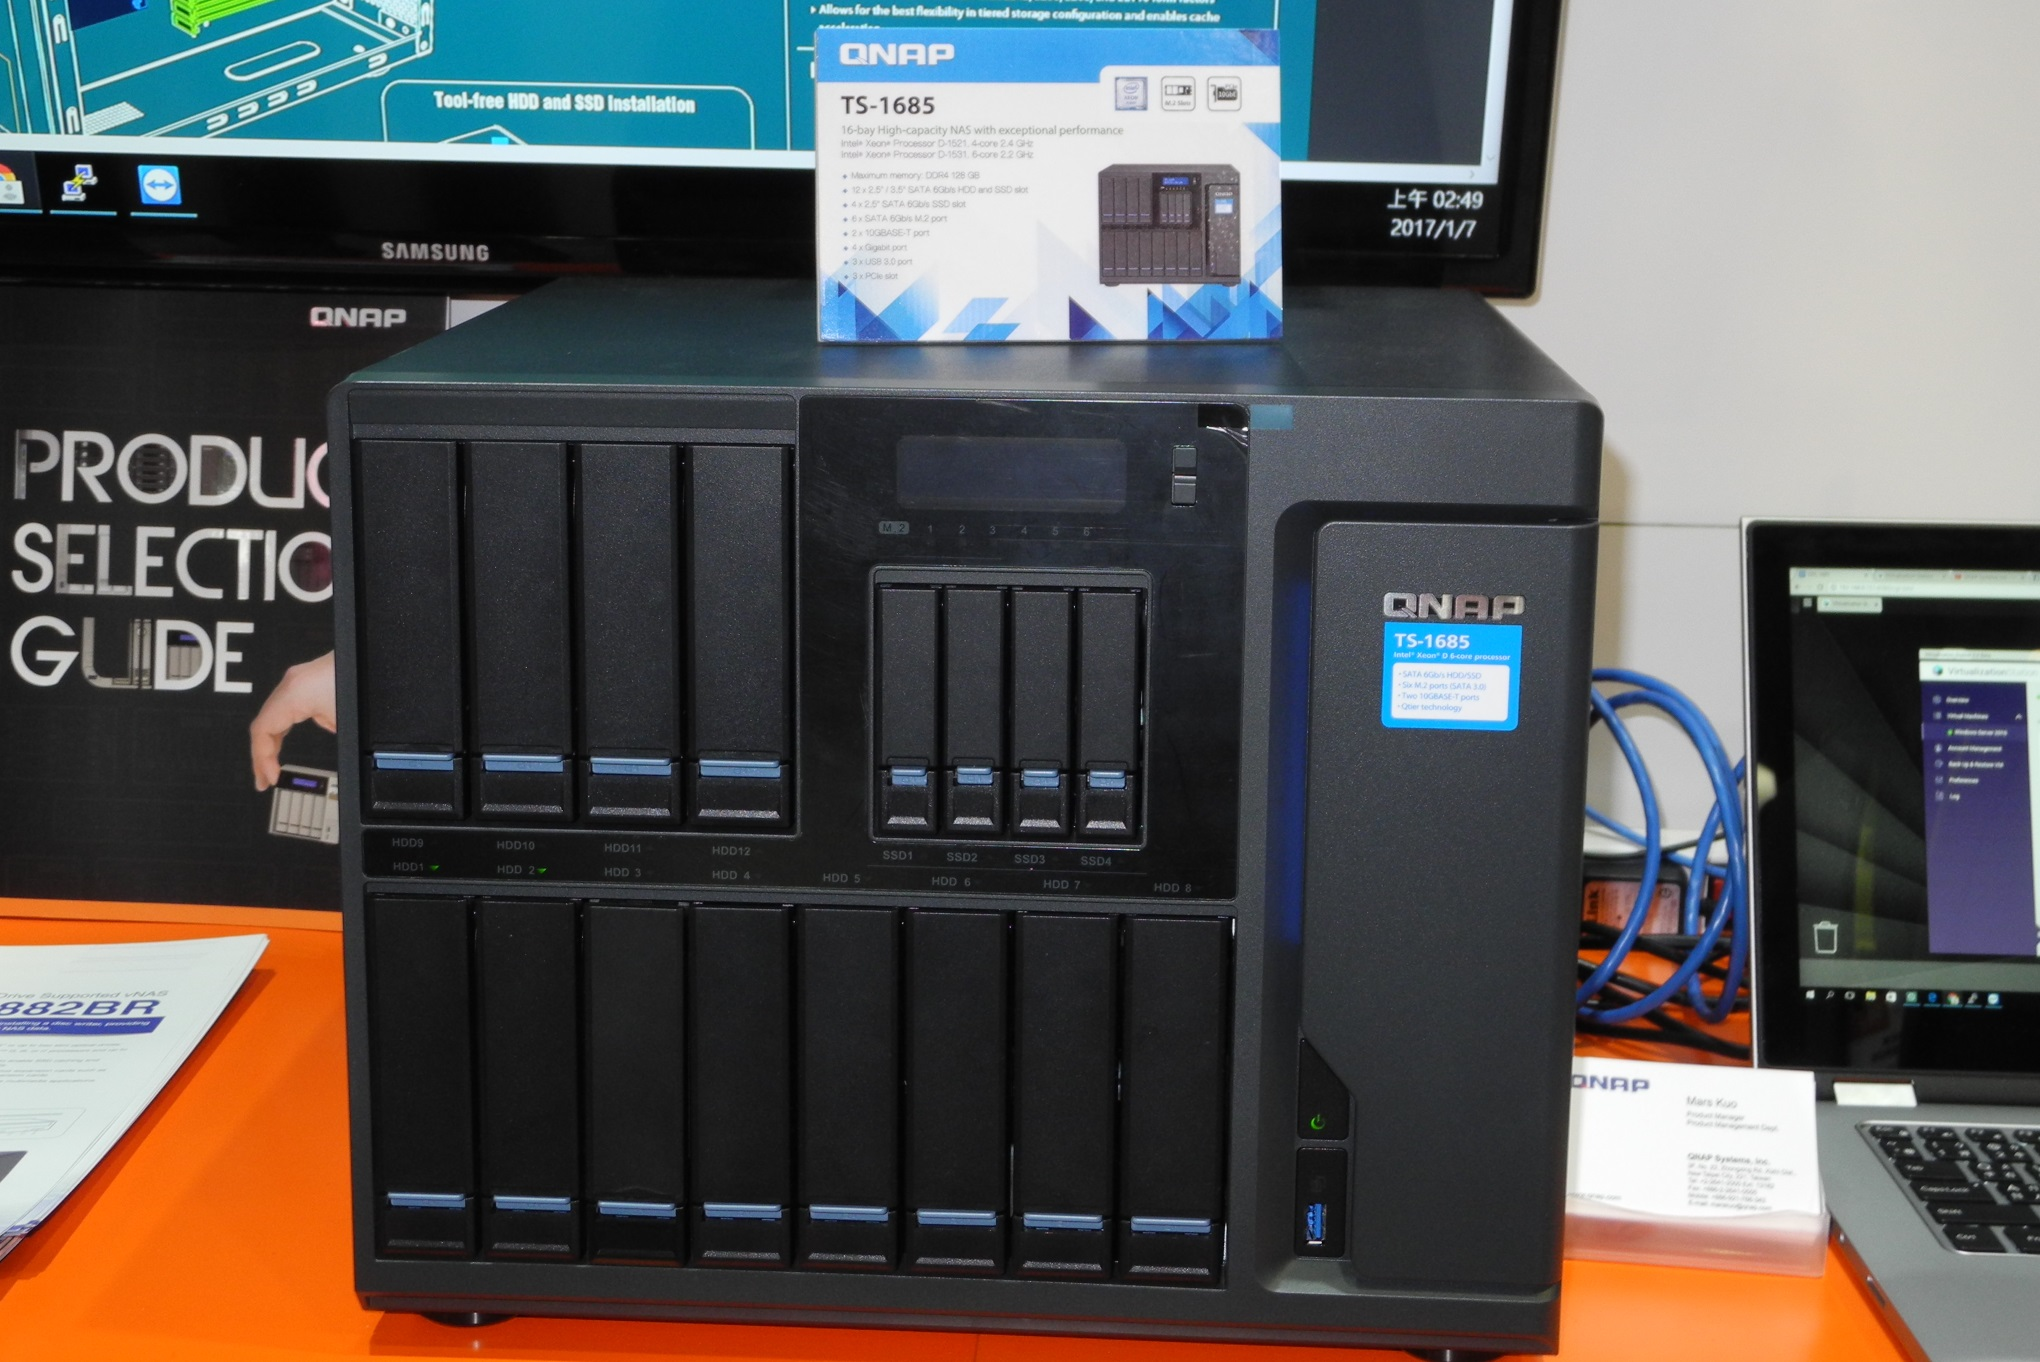 QNAP at CES 2017 - Thunderbolt 3 and Xeon D NAS Units, Residential